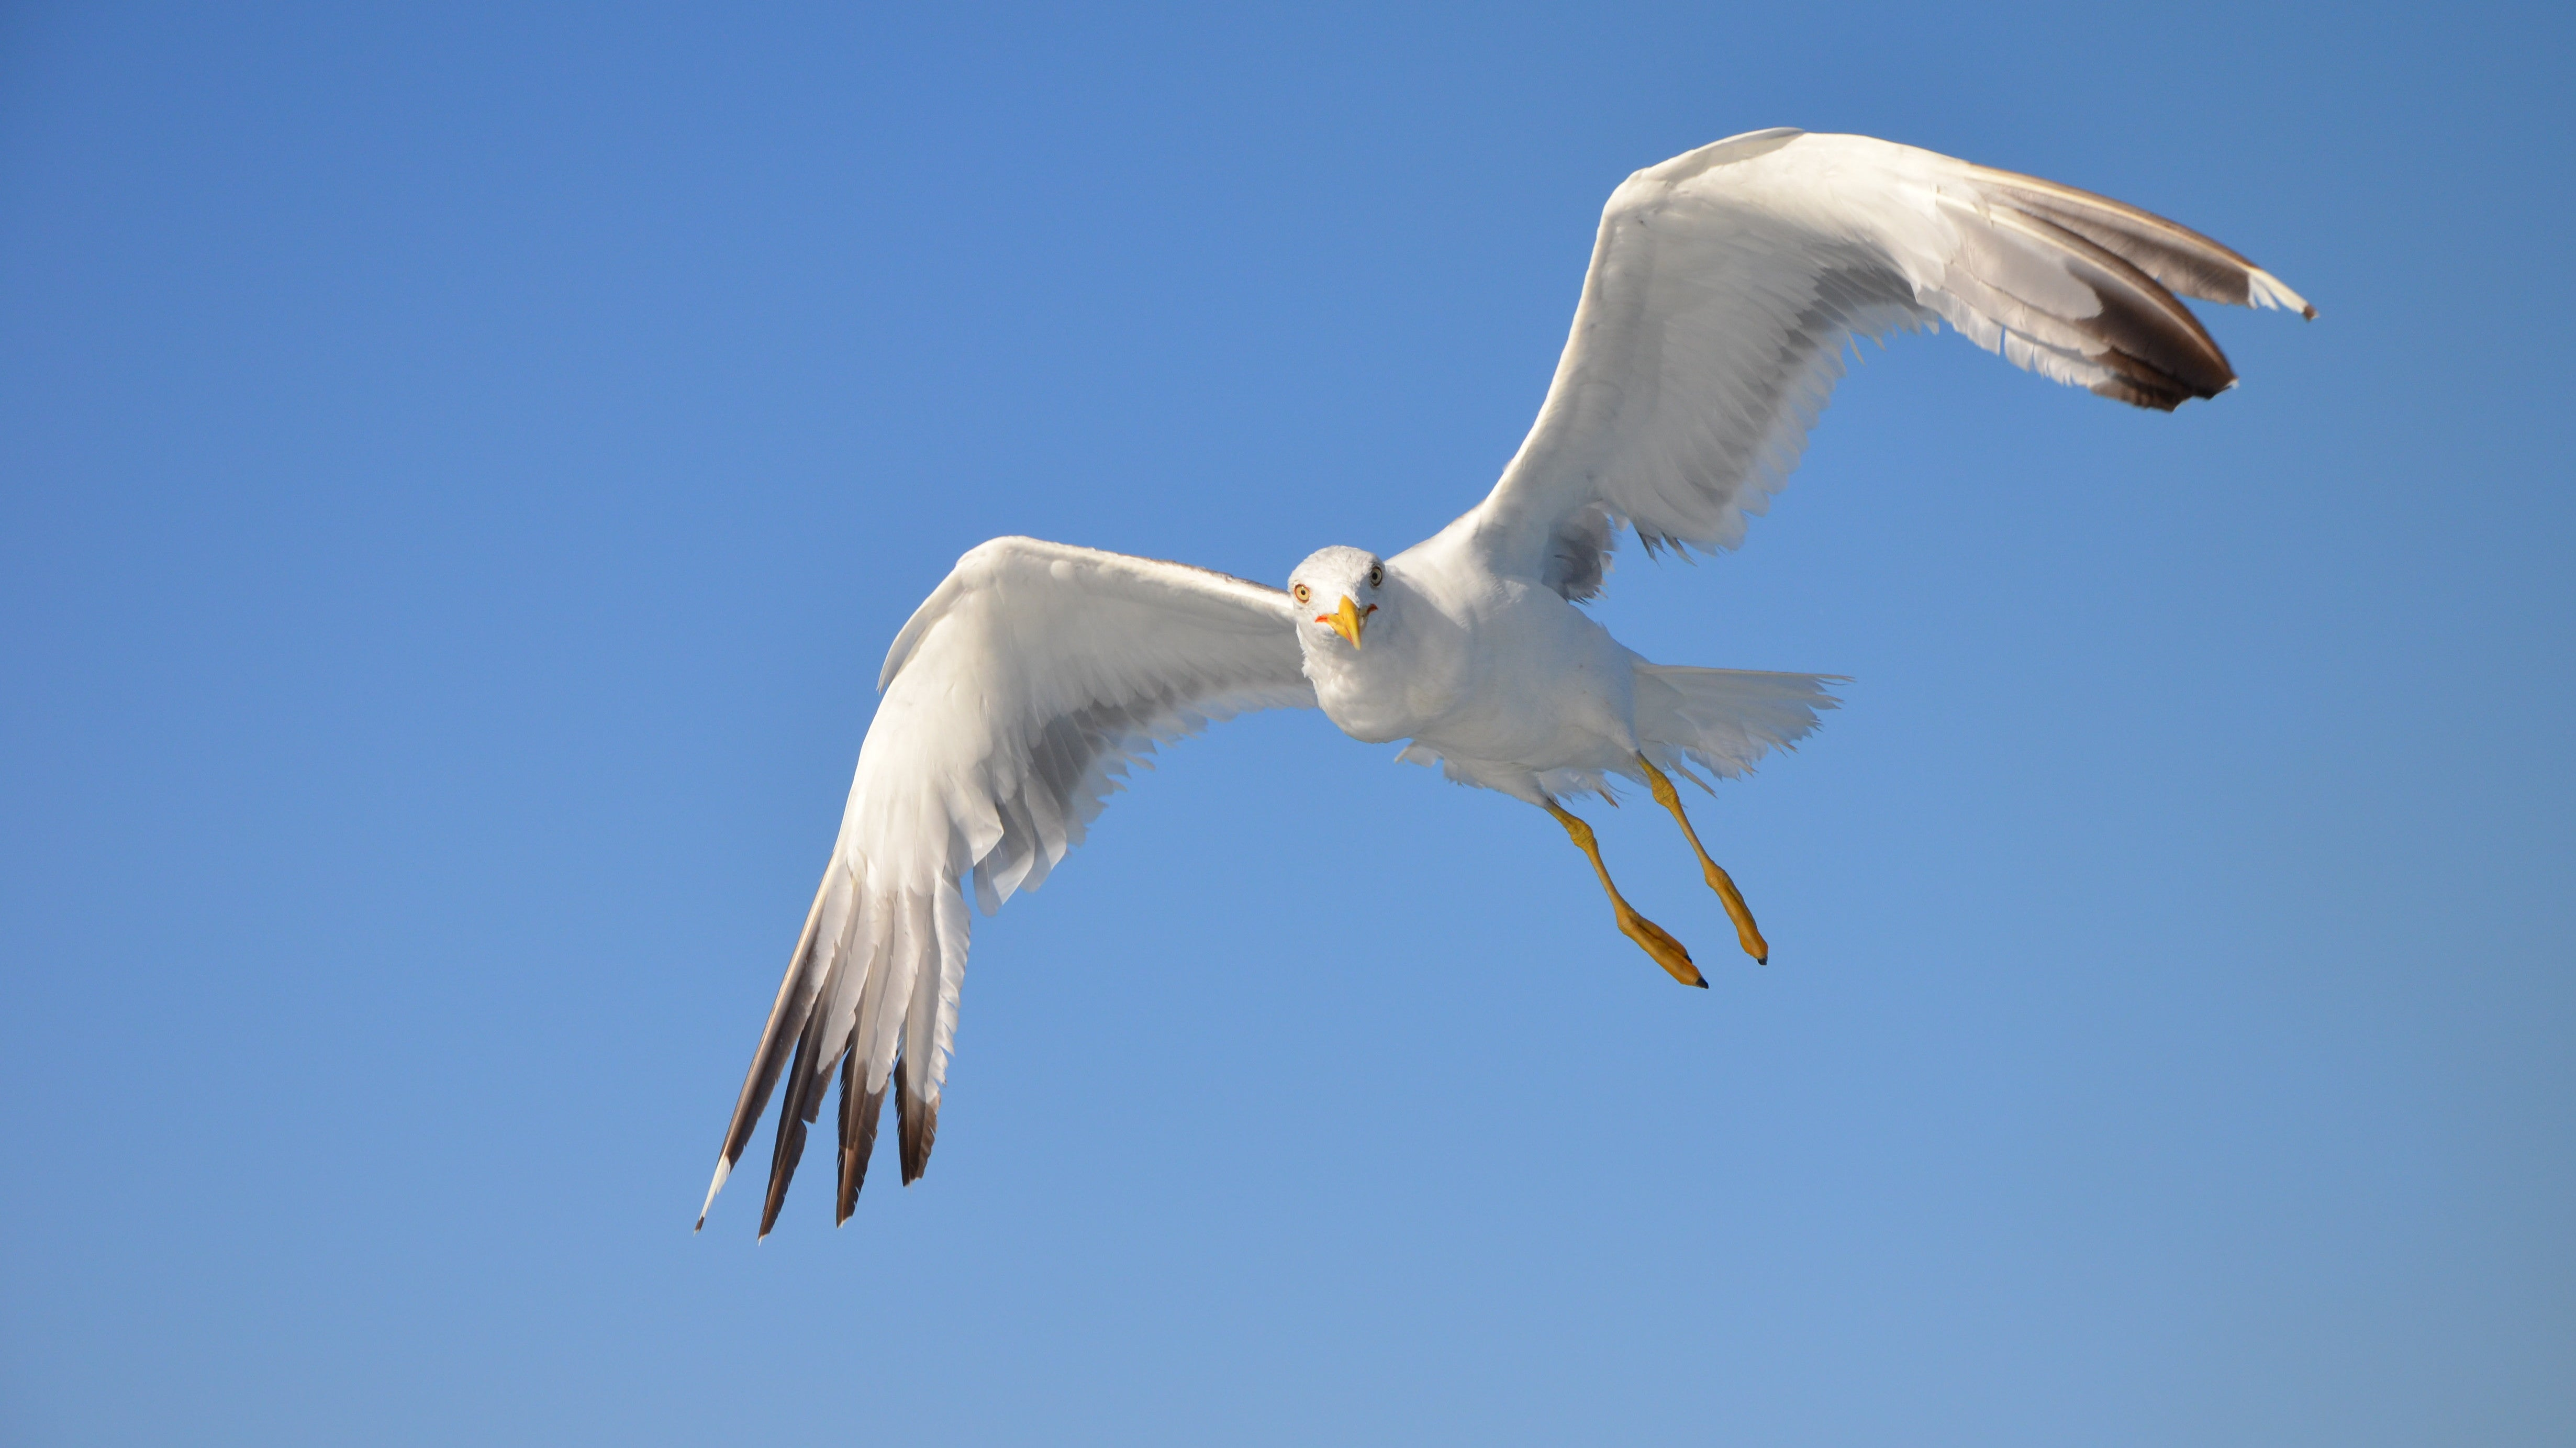 Gull Embryos Might Communicate With Each Other Through Their Eggshells